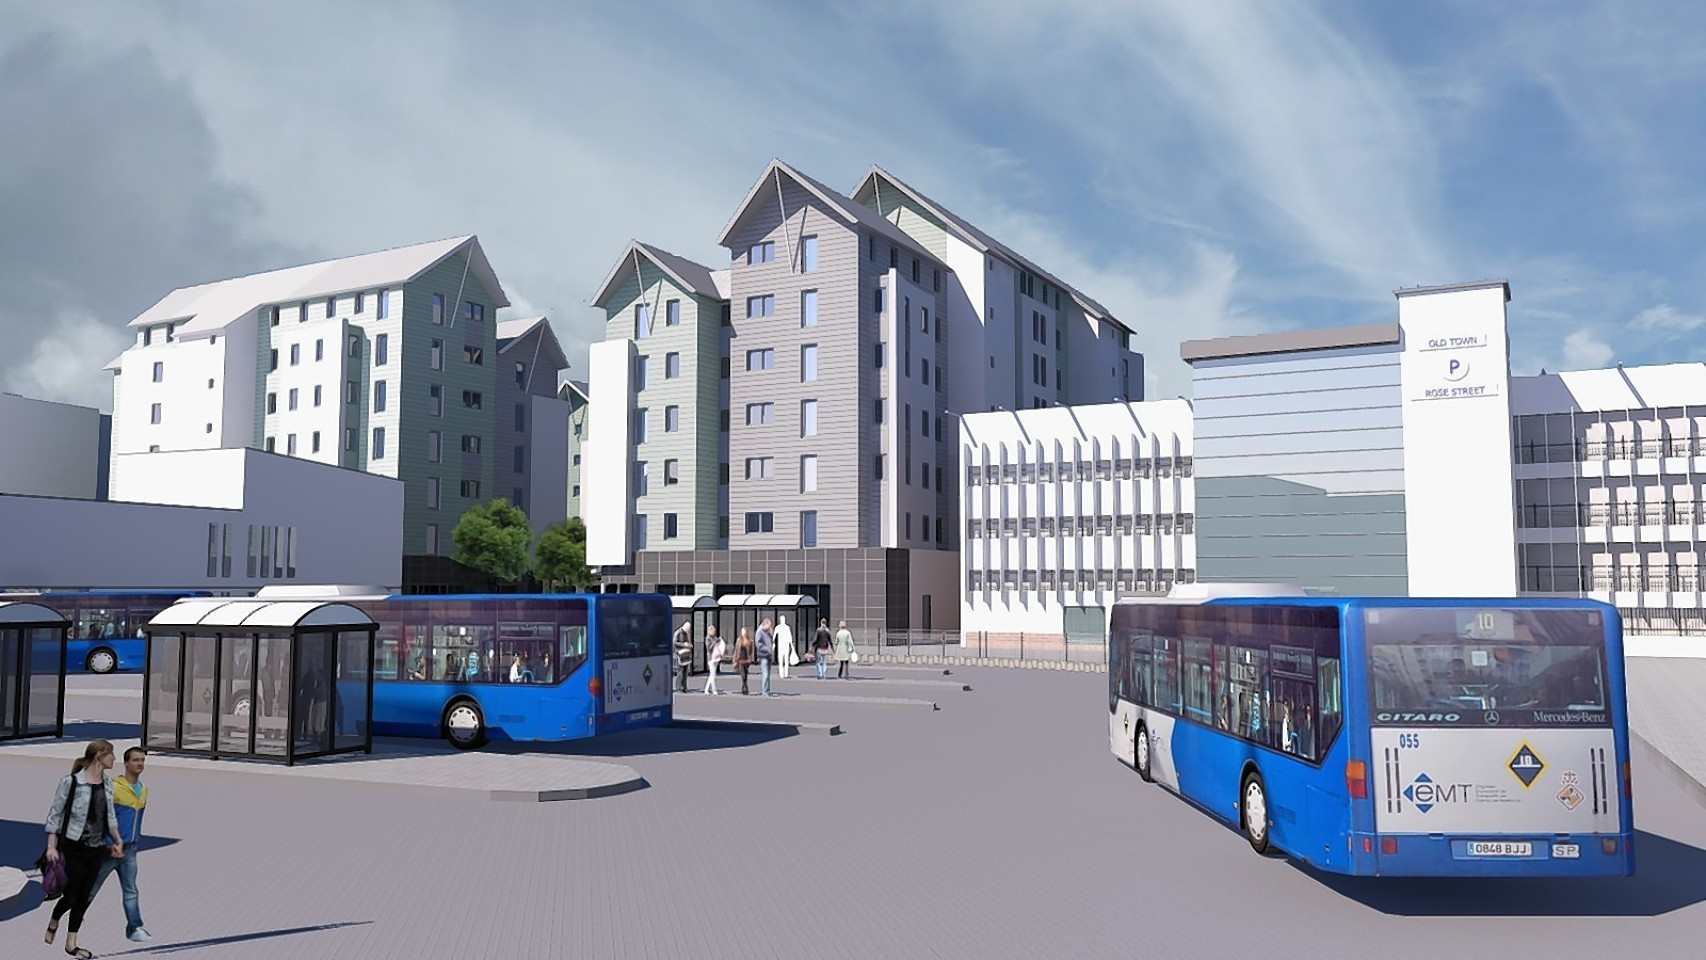 DO NOT USE - old graphic which has since been replaced  An artist's impression of the original scheme which was rejected by the Scottish Government.